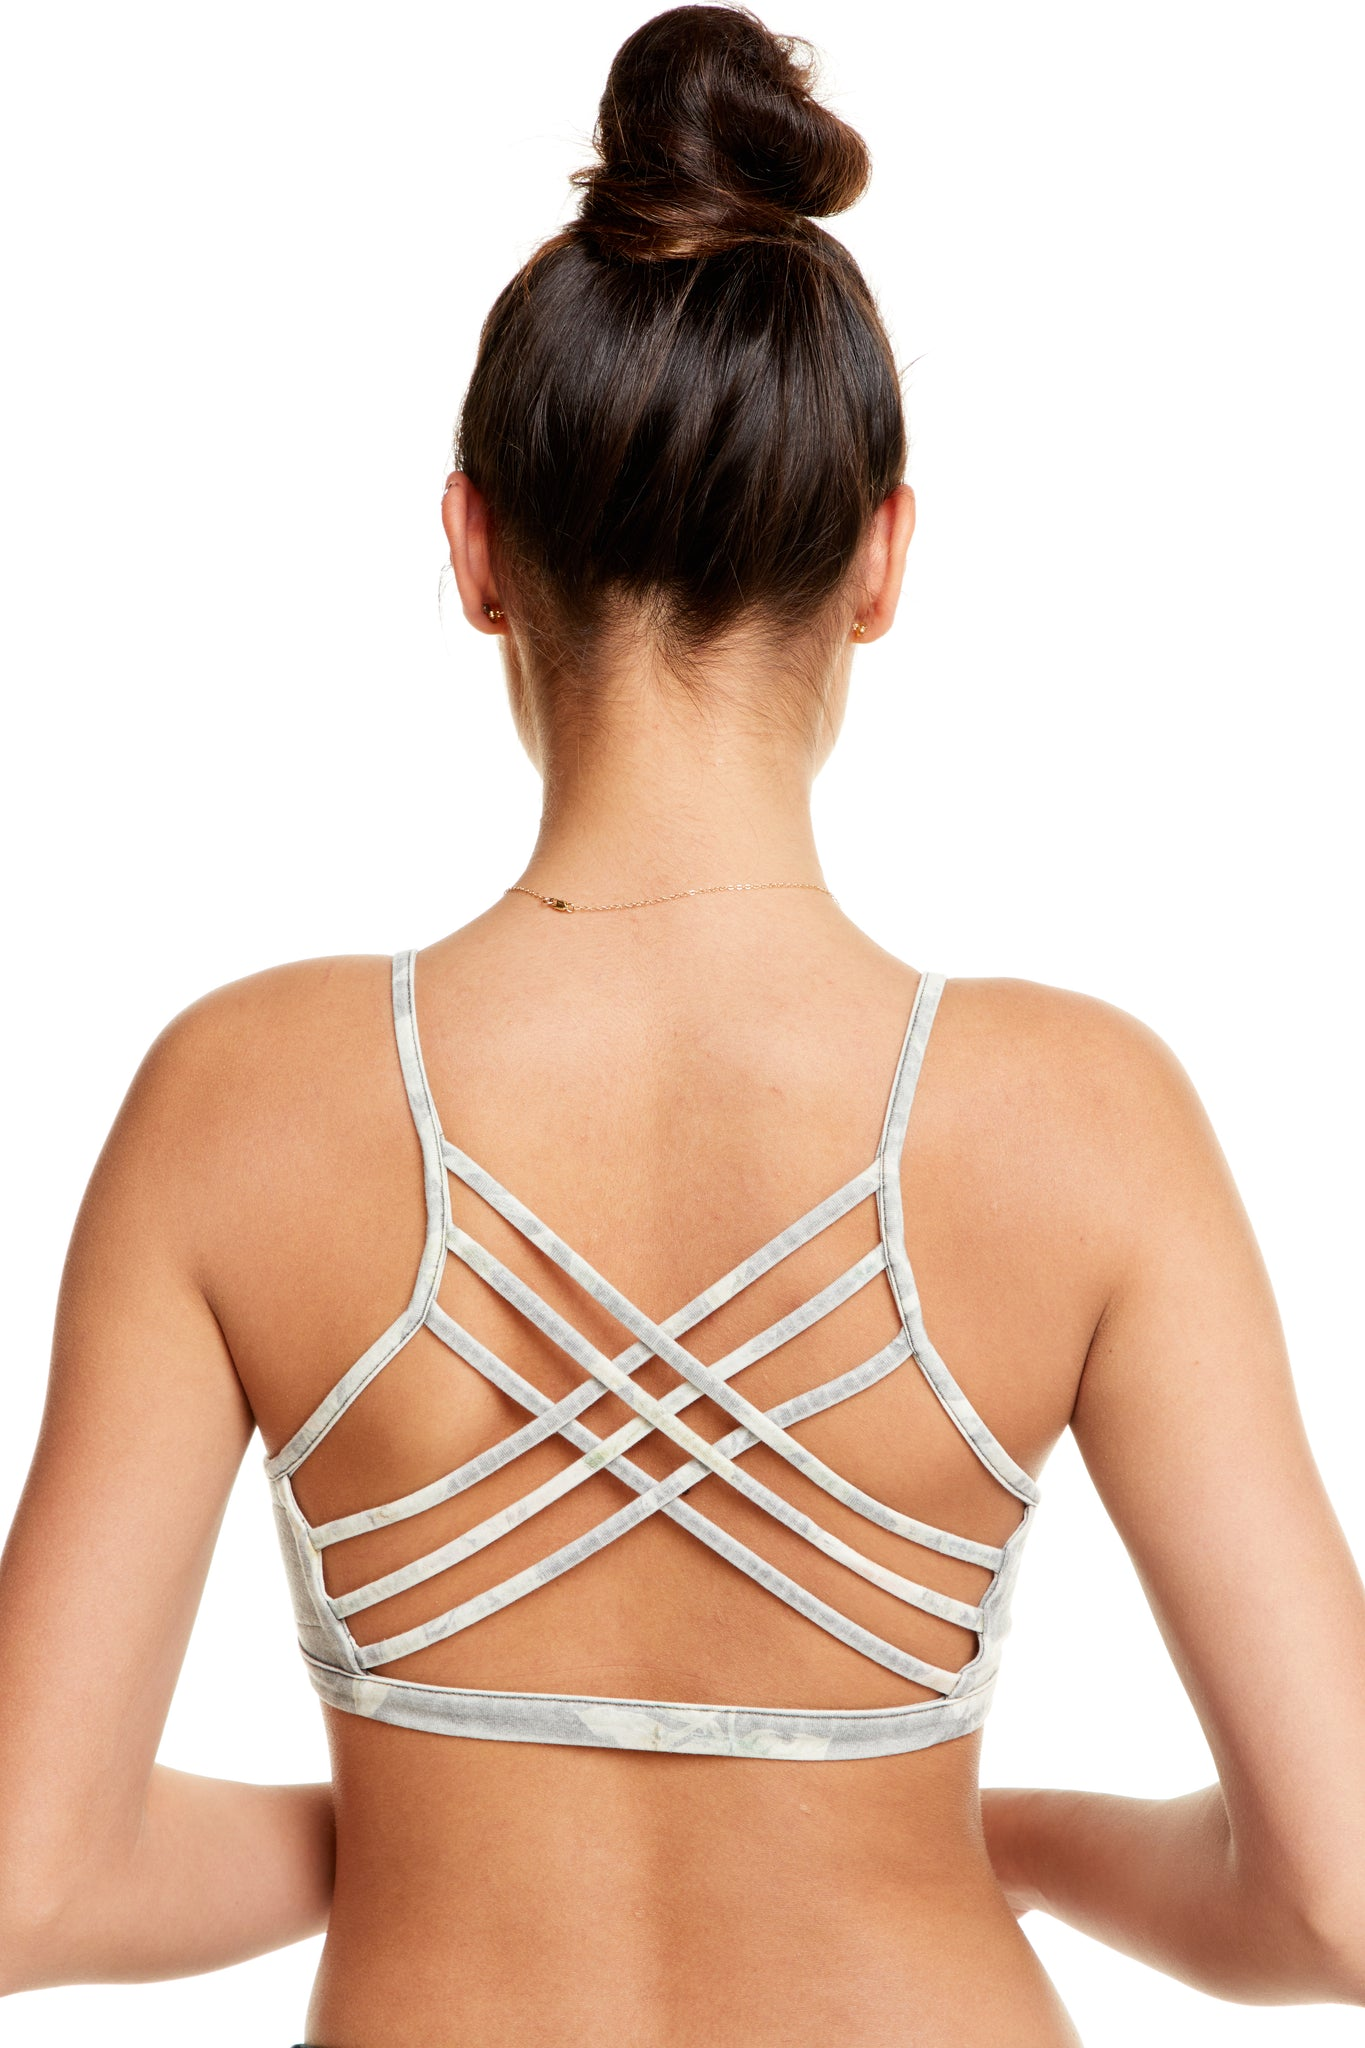 Chaser Quadrablend Strappy Cross Back Bralette